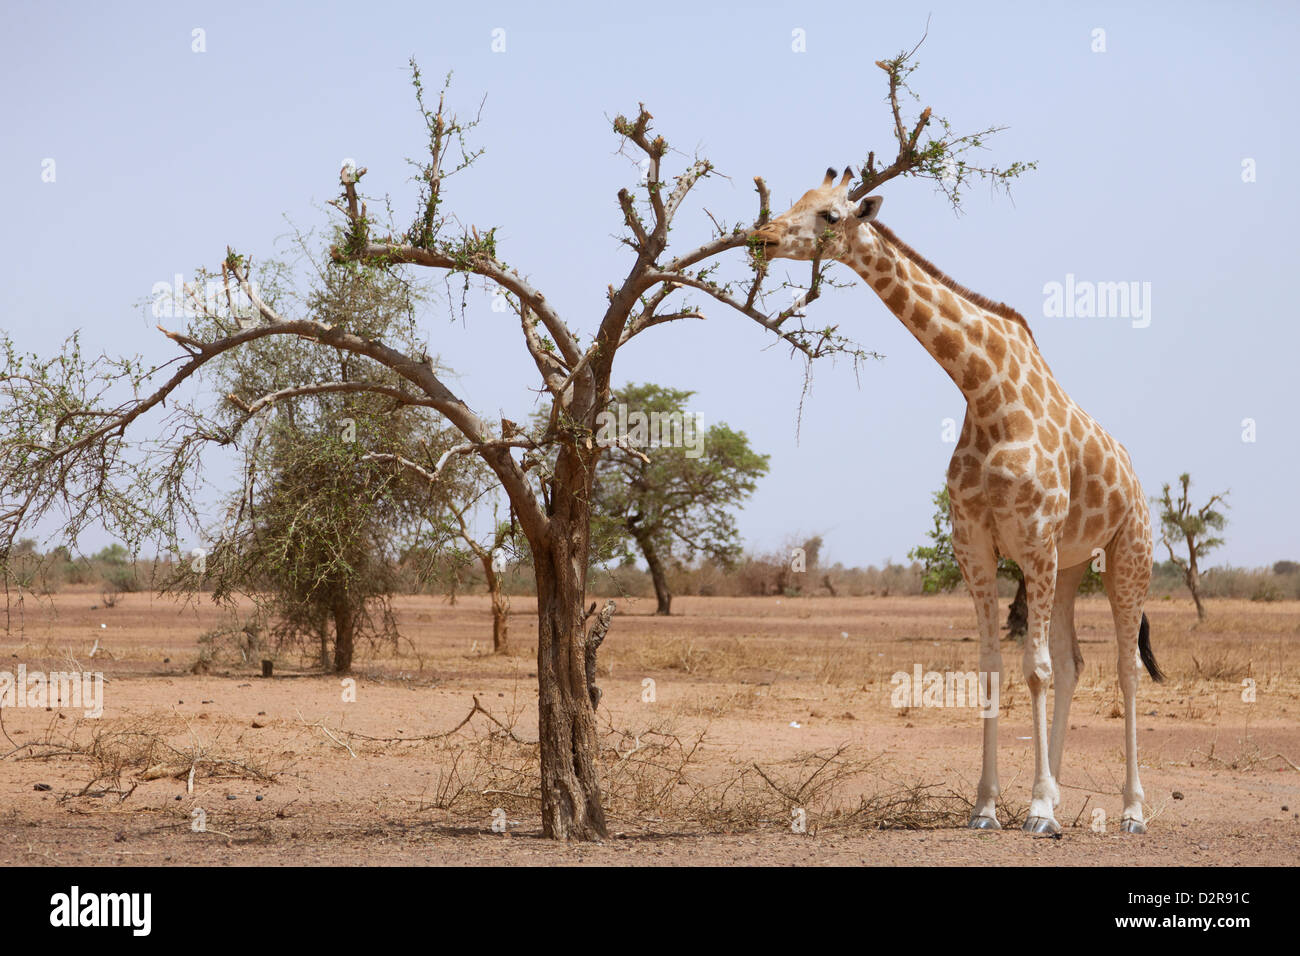 Giraffe in the park of Koure, 60 km east of Niamey, one of the last giraffes in West Africa, Niger, West Africa - Stock Image